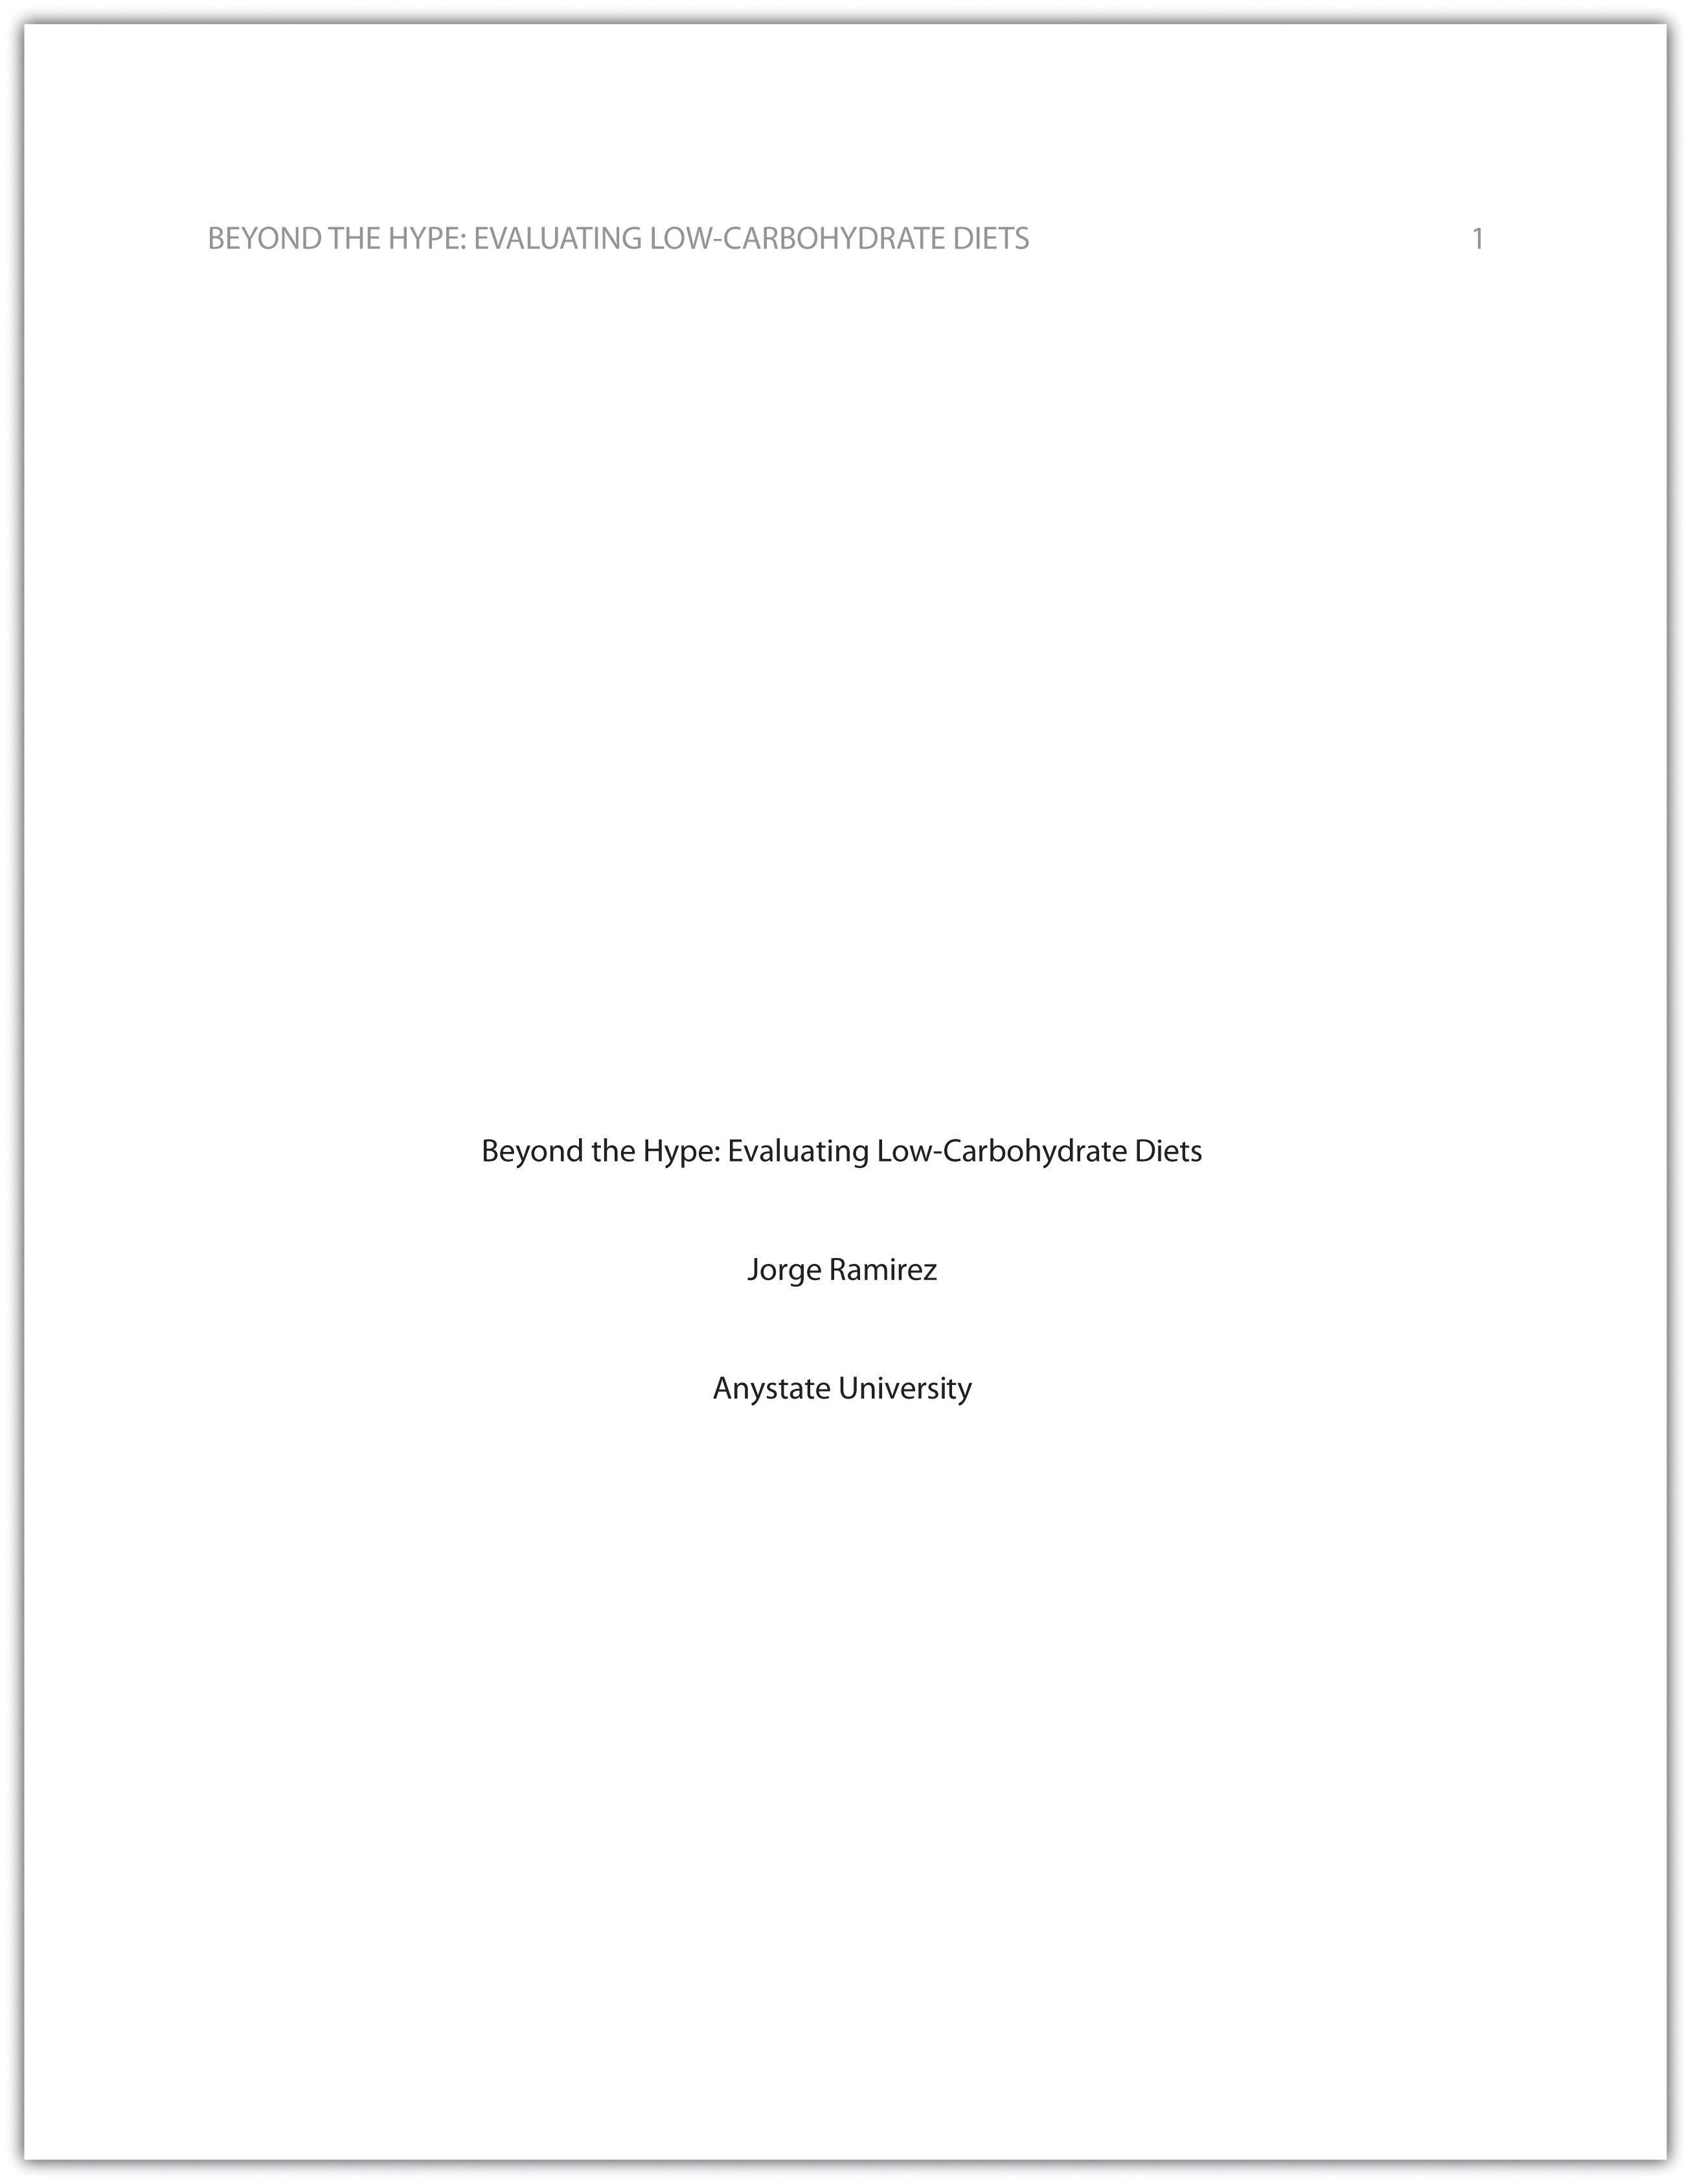 007 Cover Page For Research Paper Wondrous A Apa Style Format Turabian Full